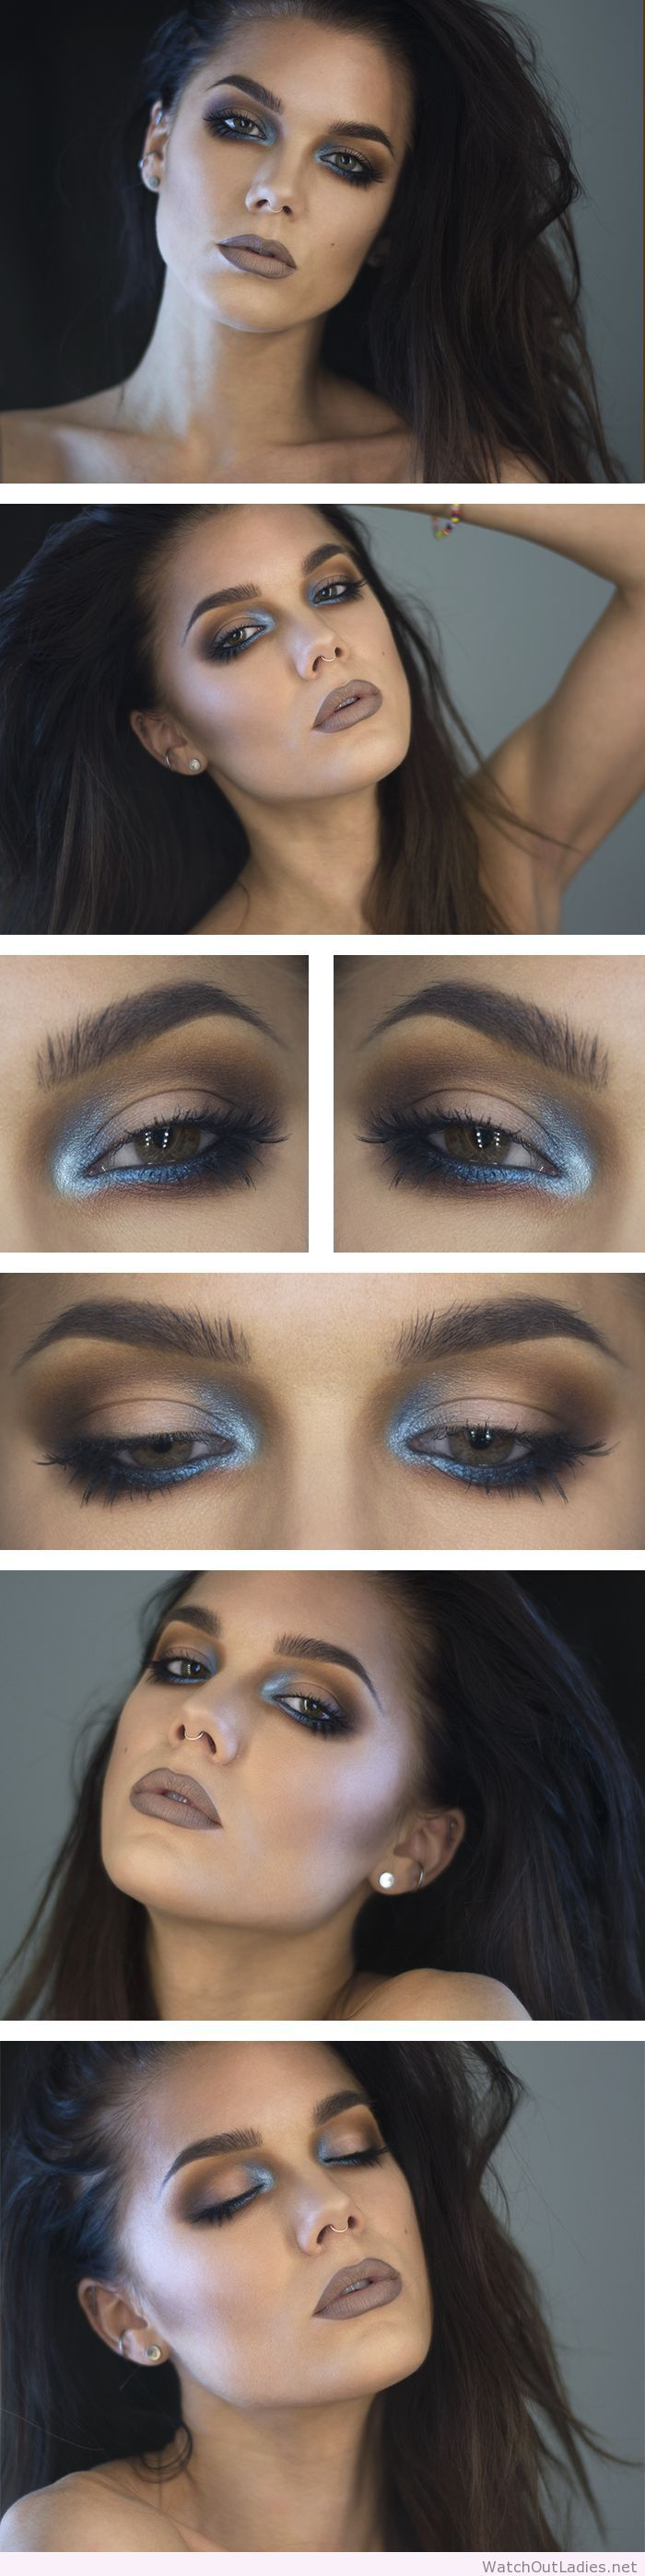 Linda Hallberg dark makeup and blue accent                                                                                                                                                                                 More